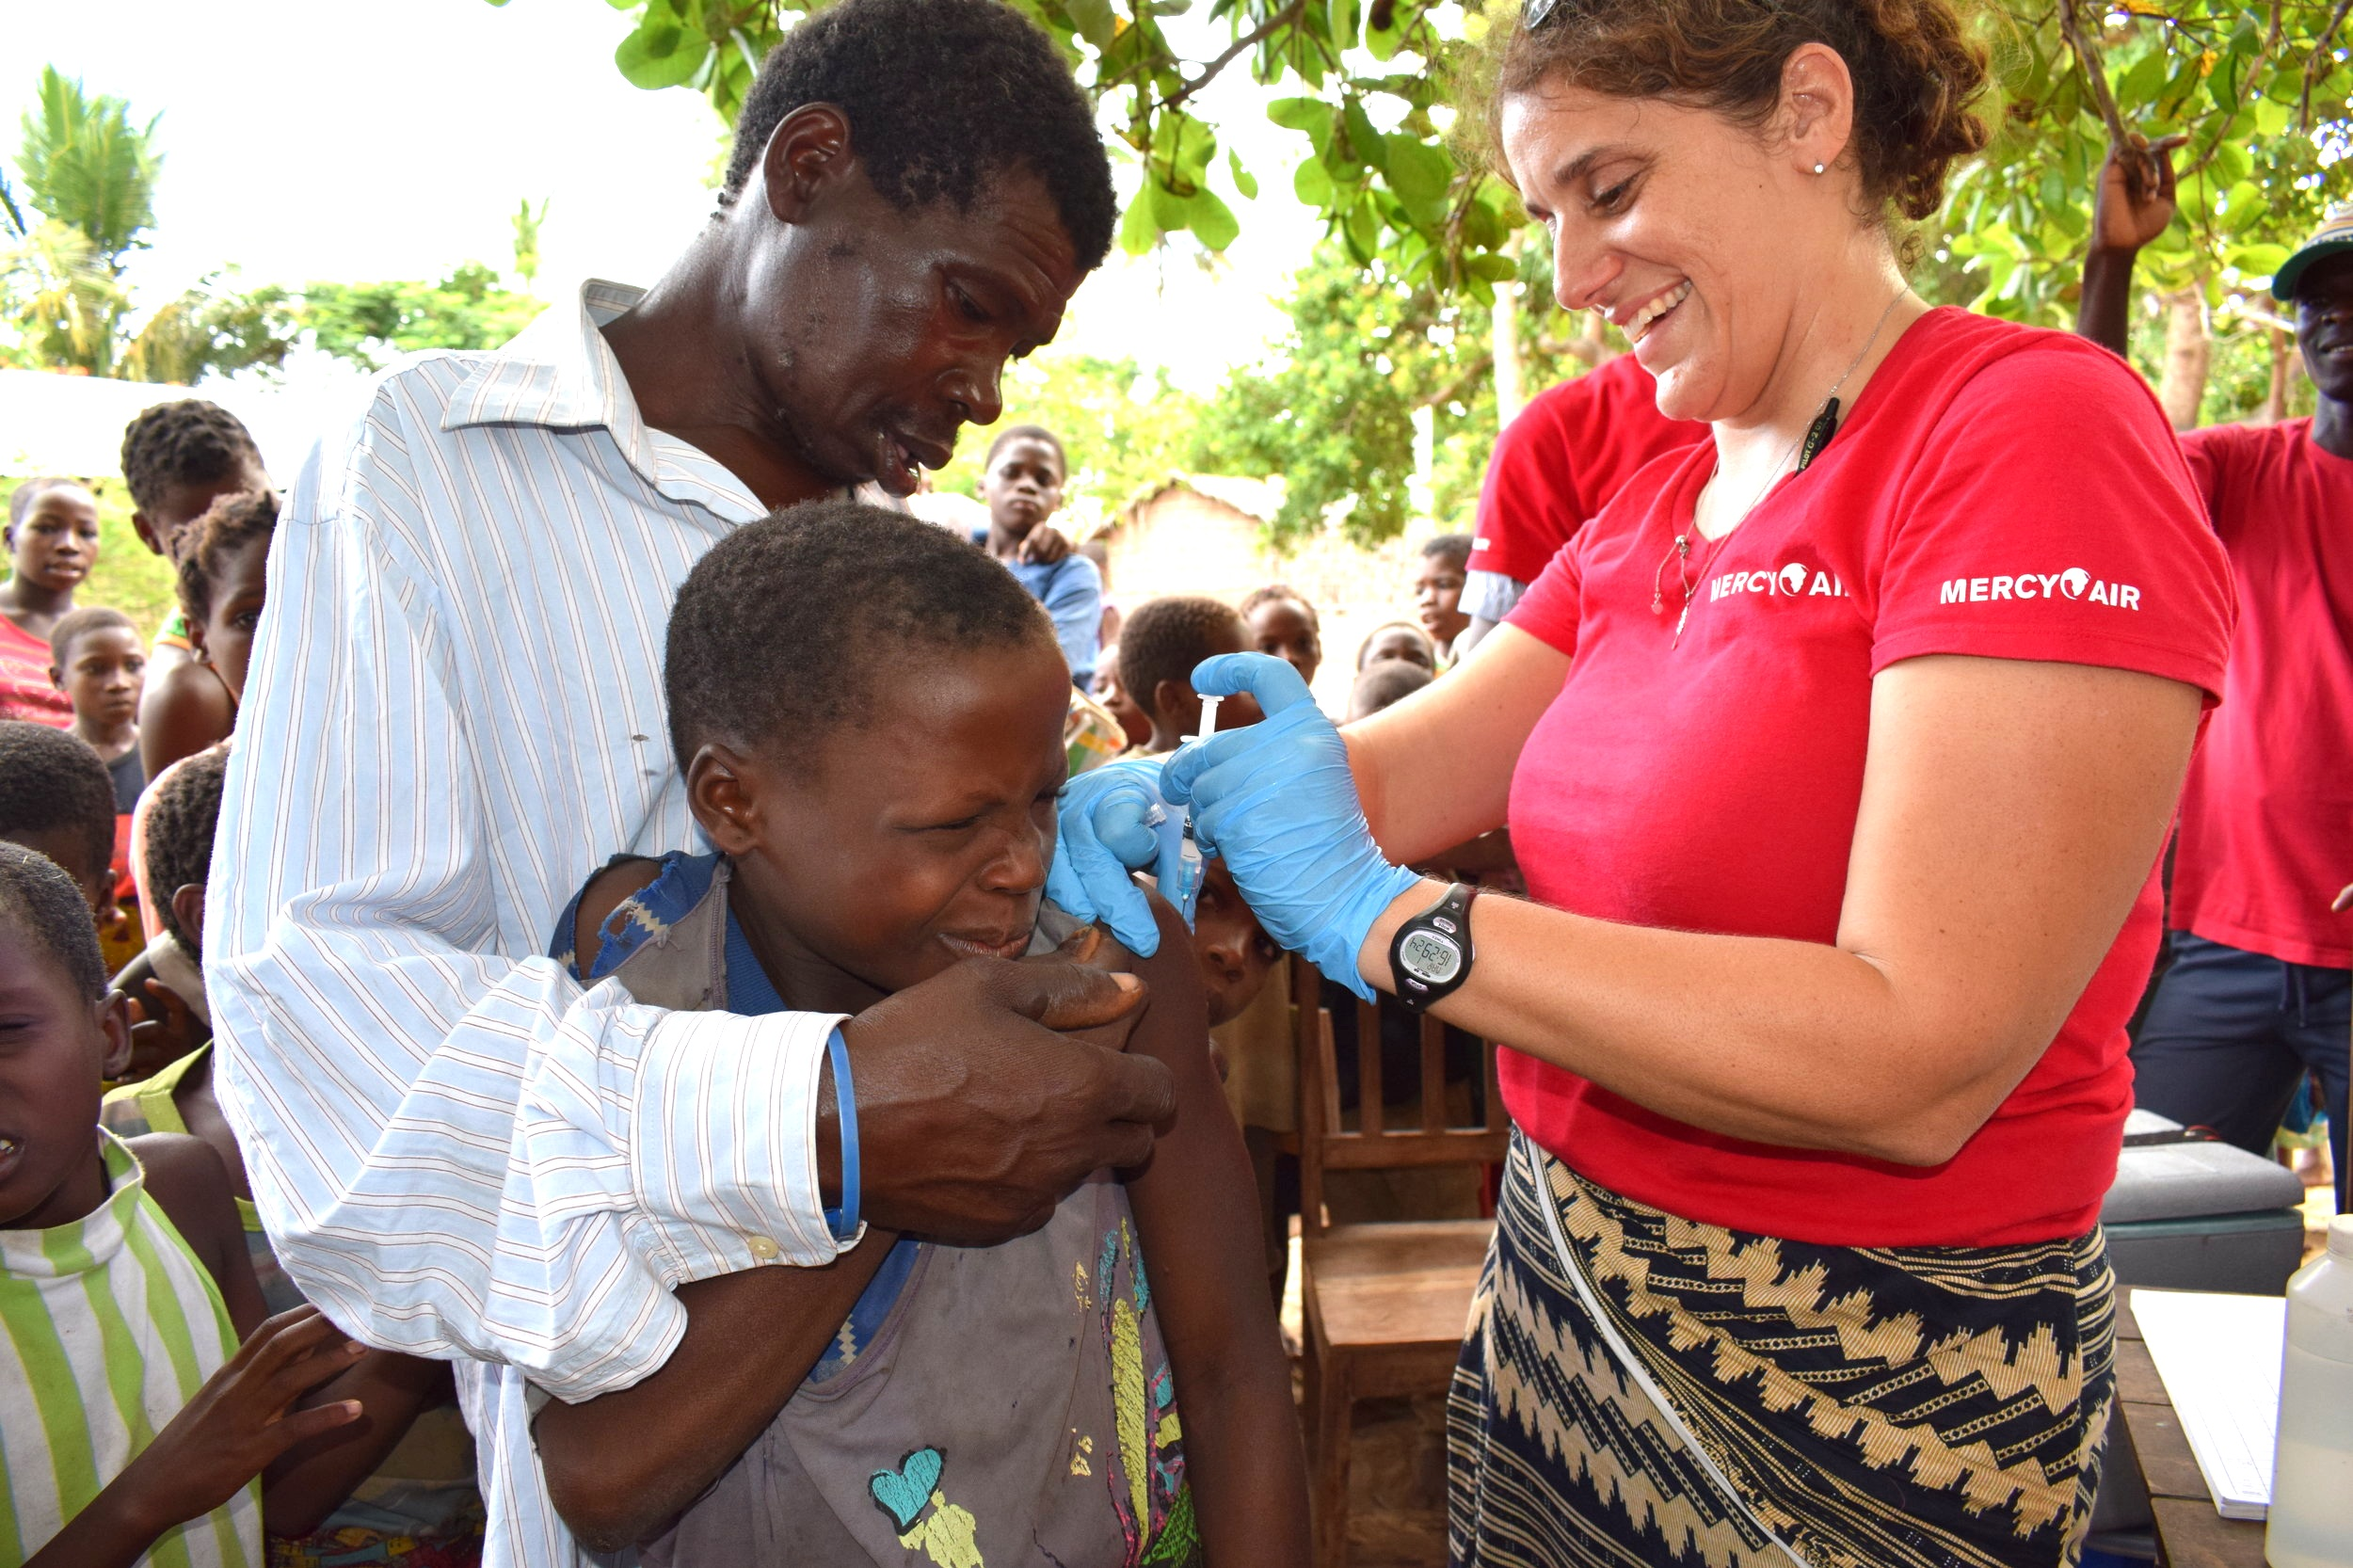 MOBILE CLINICS - We visit over 40 remote villages without any access to health care.$15 can help get us to one of these villages$600 can help us fund one whole outreach.Annual goal: $3500